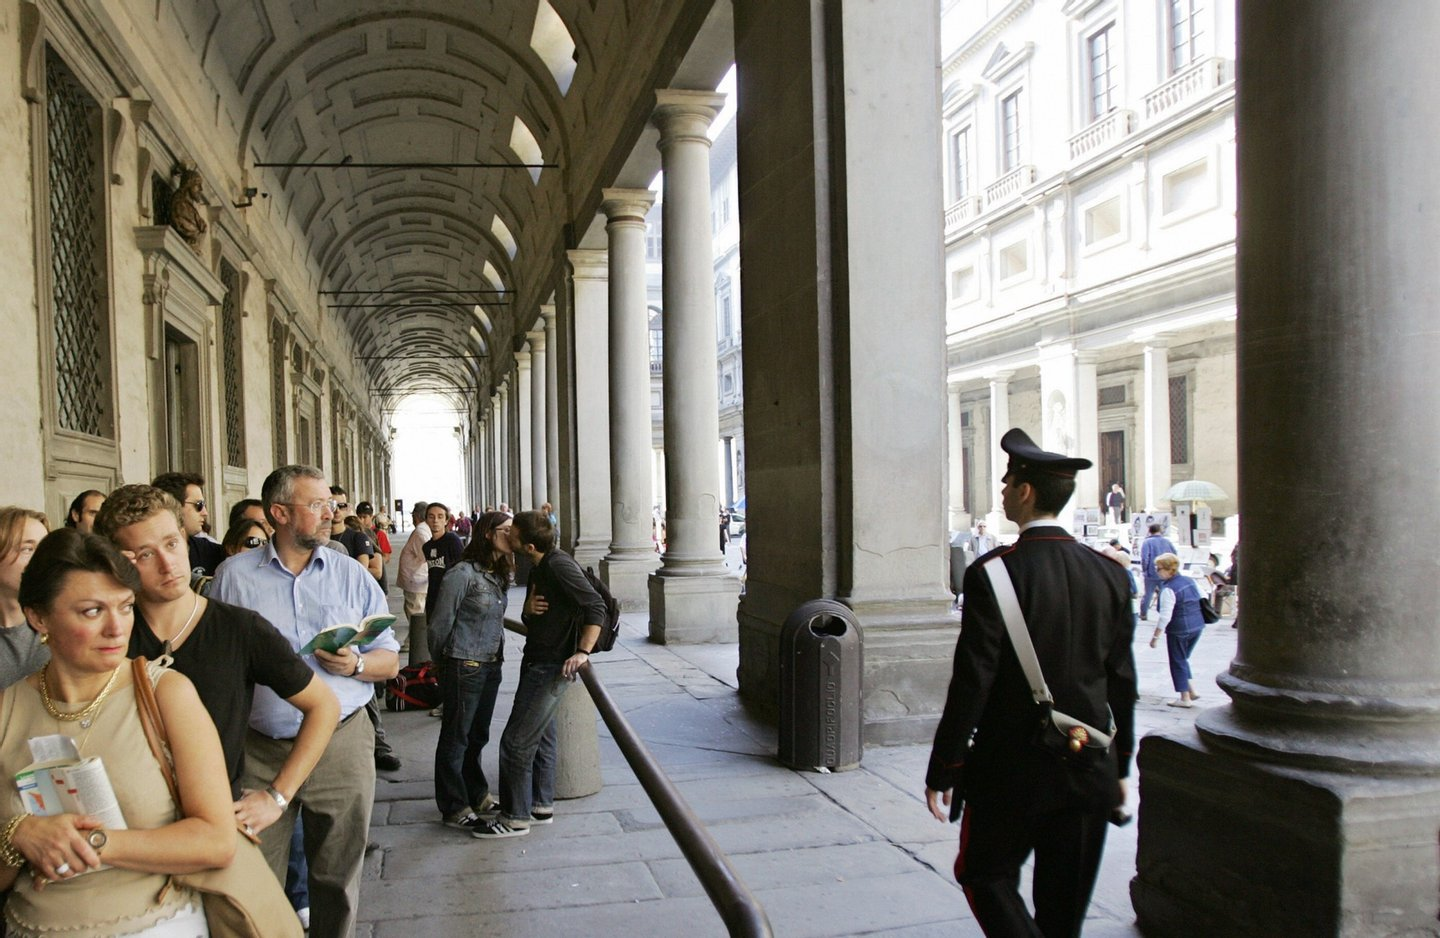 Florence, ITALY:  Picture of the arcades of the Uffizi in Florence, 27 Octobre 2006. The floodwaters from the Arno River swept through the city and killed 87 people and poured tonnes of mud into museums and churches. Art restorers have appealed for money to rescue hundreds of works still caked in mud from floods in Florence 40 years ago. AFP PHOTO / ALBERTO PIZZOLI  (Photo credit should read ALBERTO PIZZOLI/AFP/Getty Images)